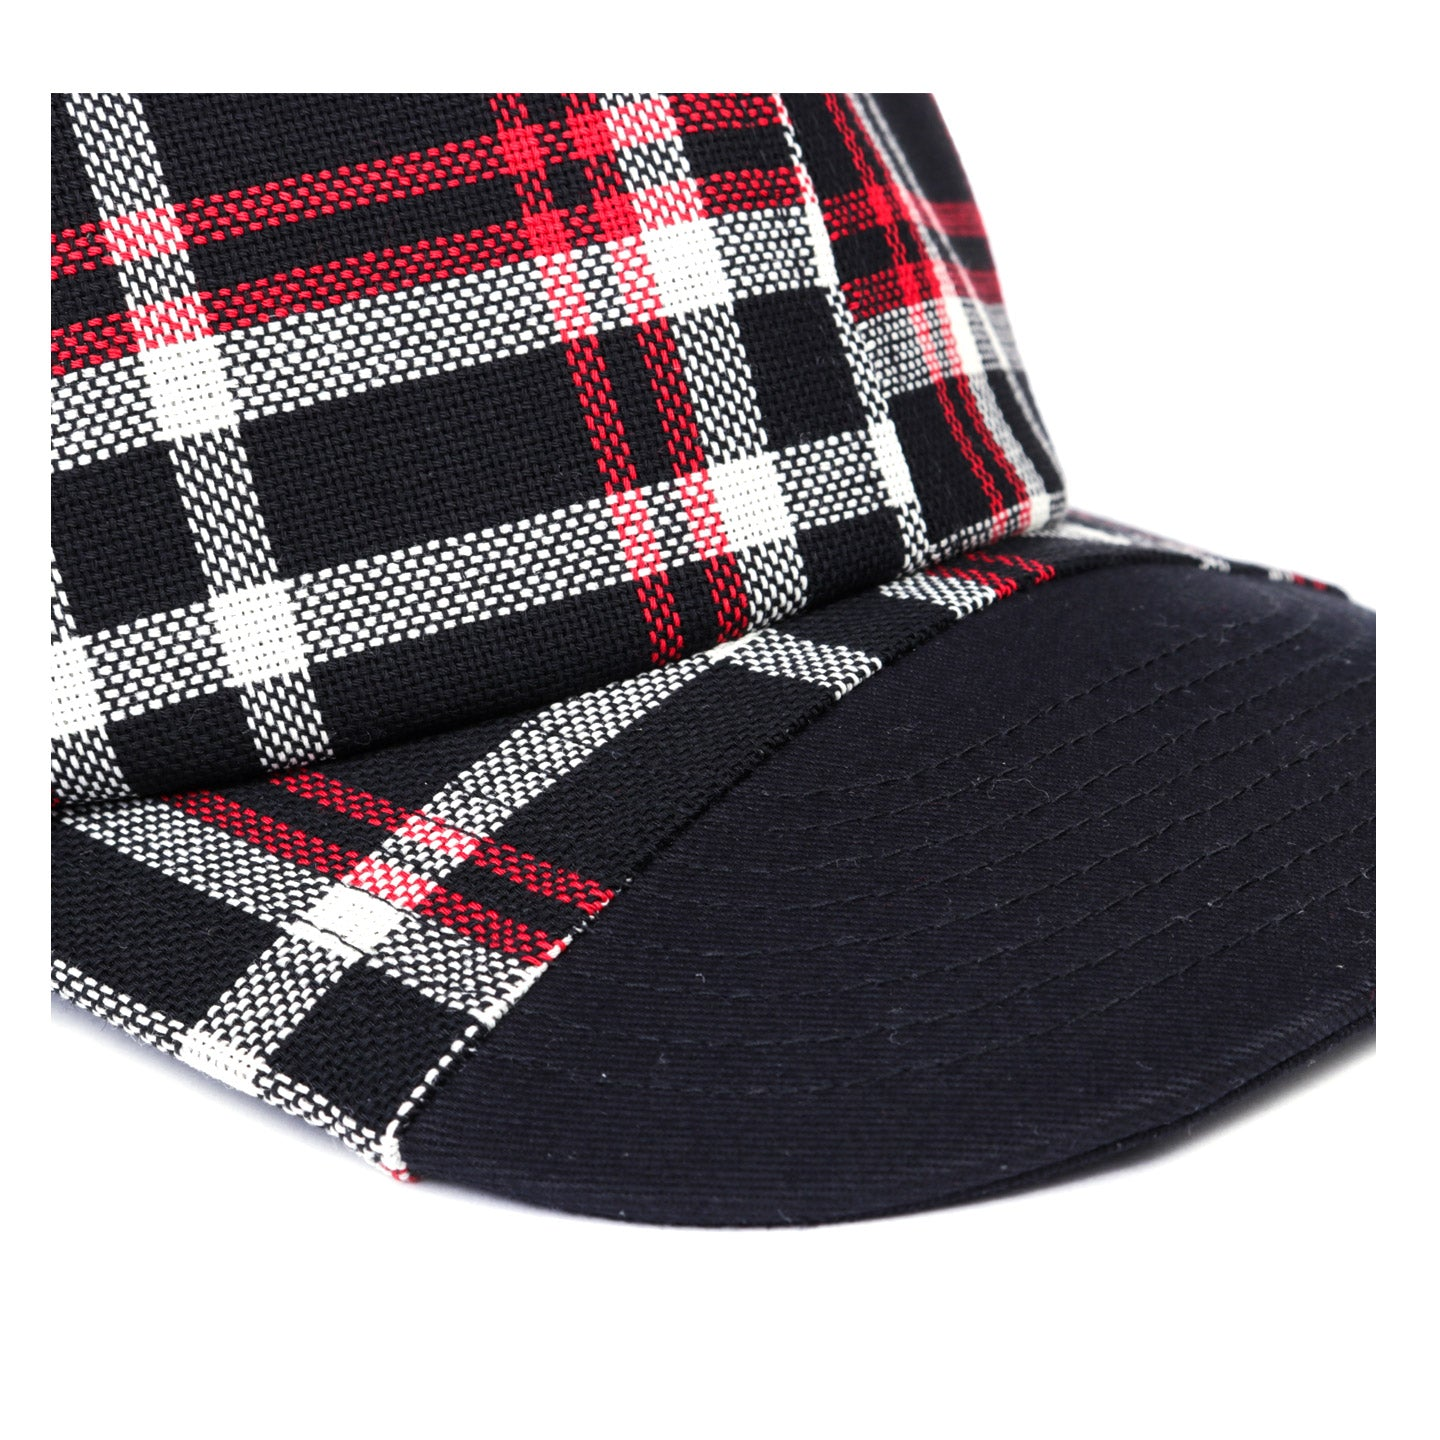 N.HOOLYWOOD 1201-AC08 UNDERCOVER CAP BLACK CHECK